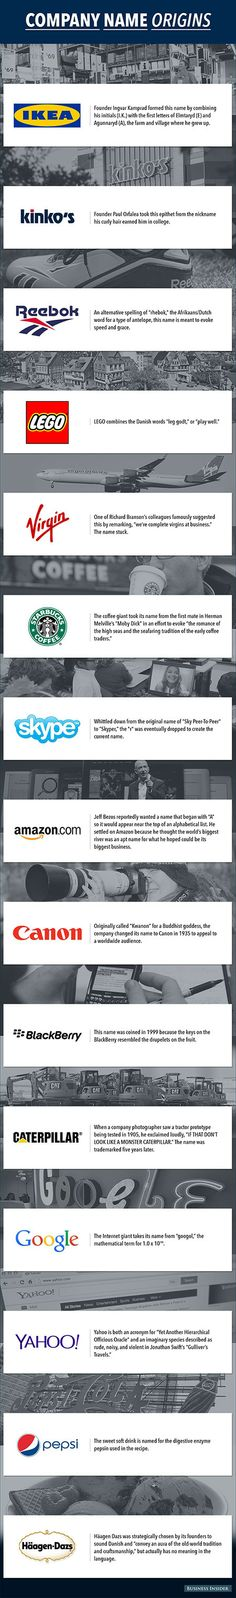 This is How 15 Famous Companies Got Their Names - TechEBlog